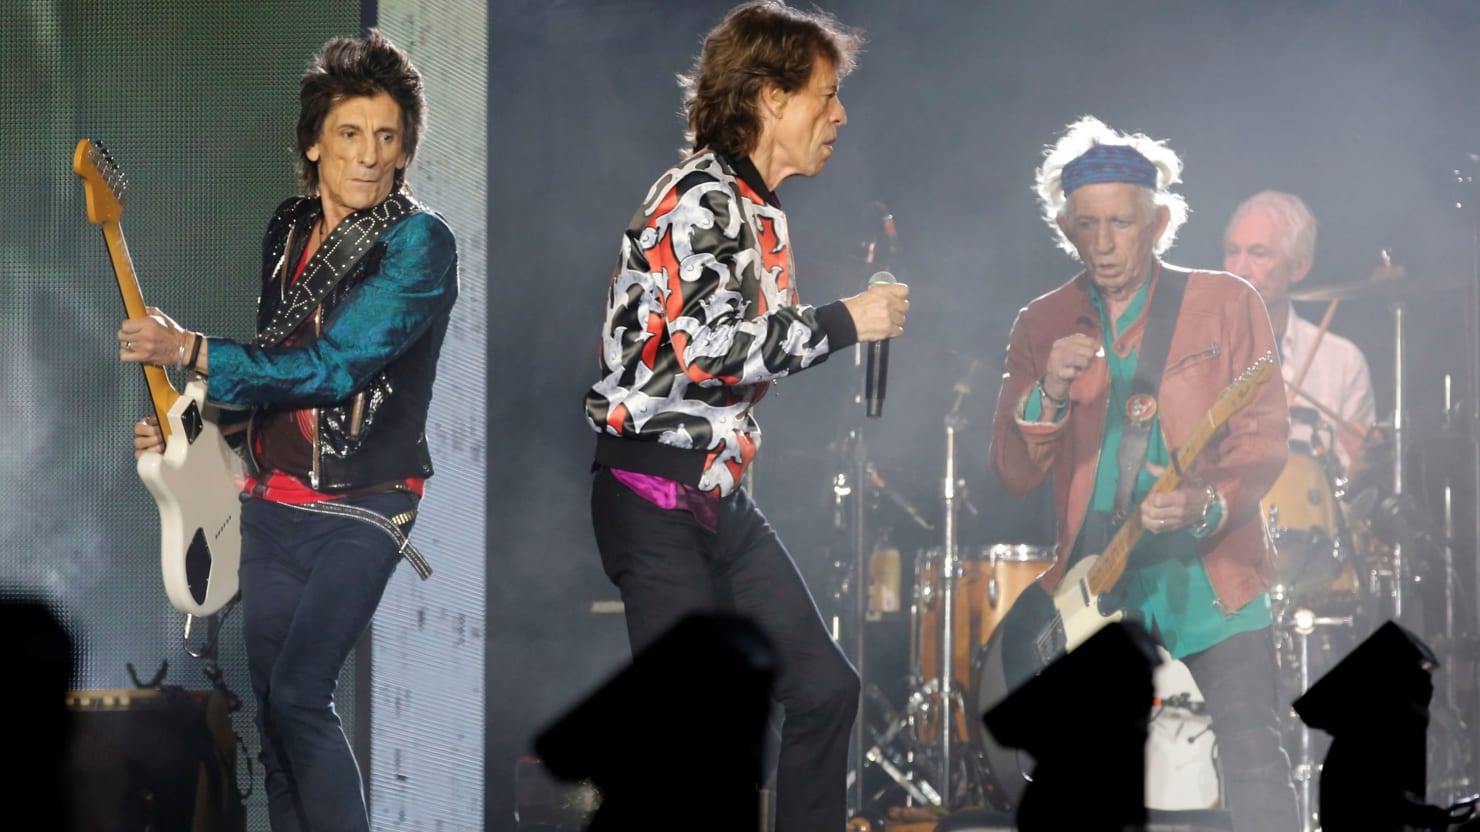 Rolling Stones Announce Rescheduled U.S. Dates After Mick Jagger's Health Scare